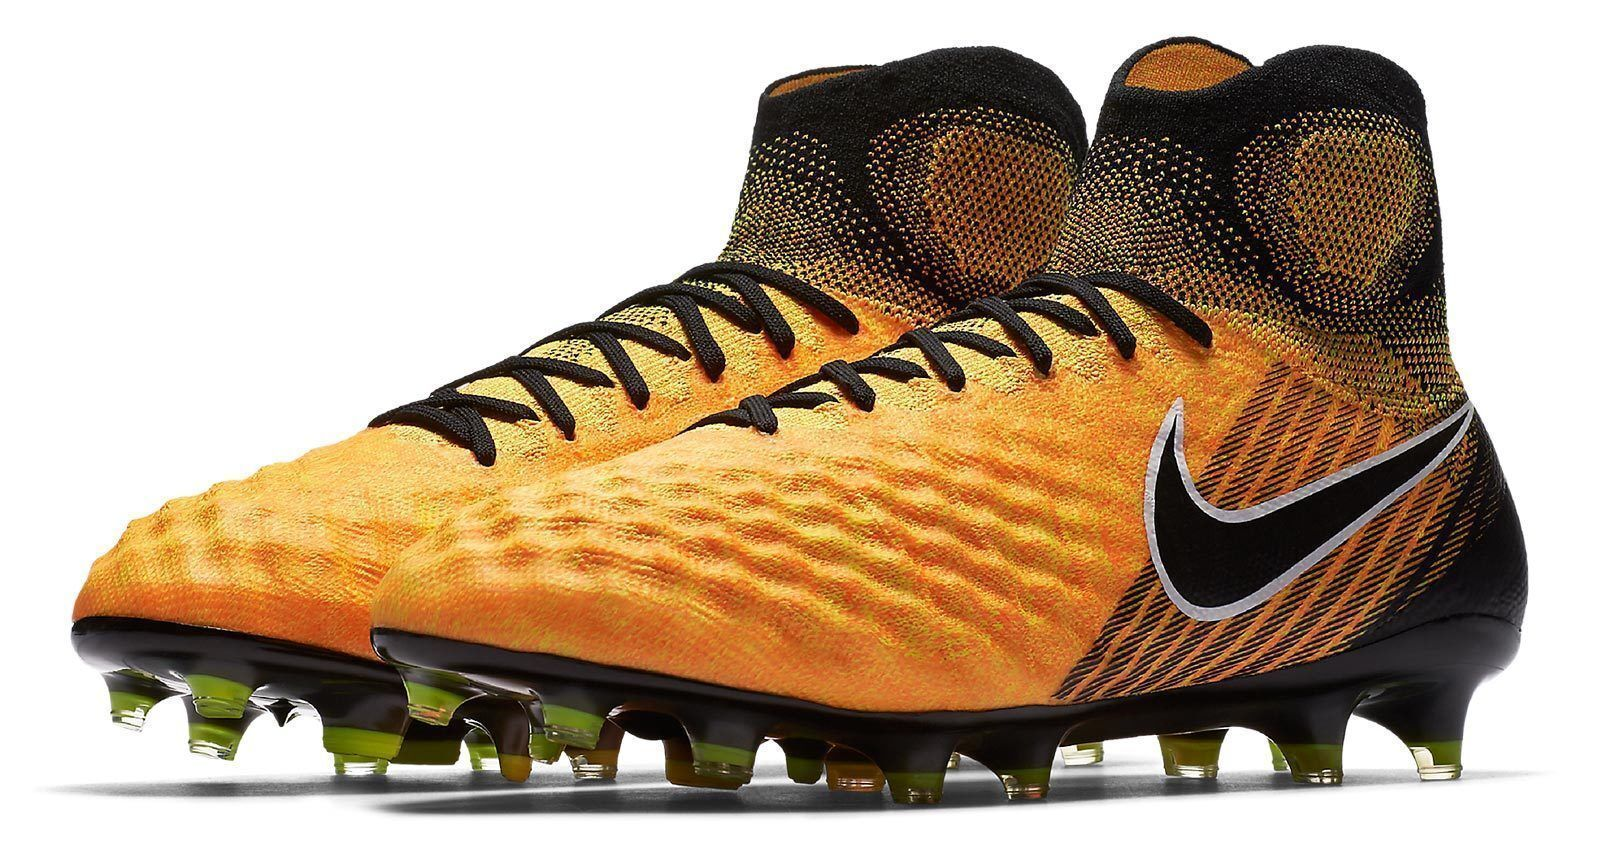 NIKE MAGISTA OBRA II FG SOCCER CLEATS 844595 801 Price reduction Comfortable and good-looking